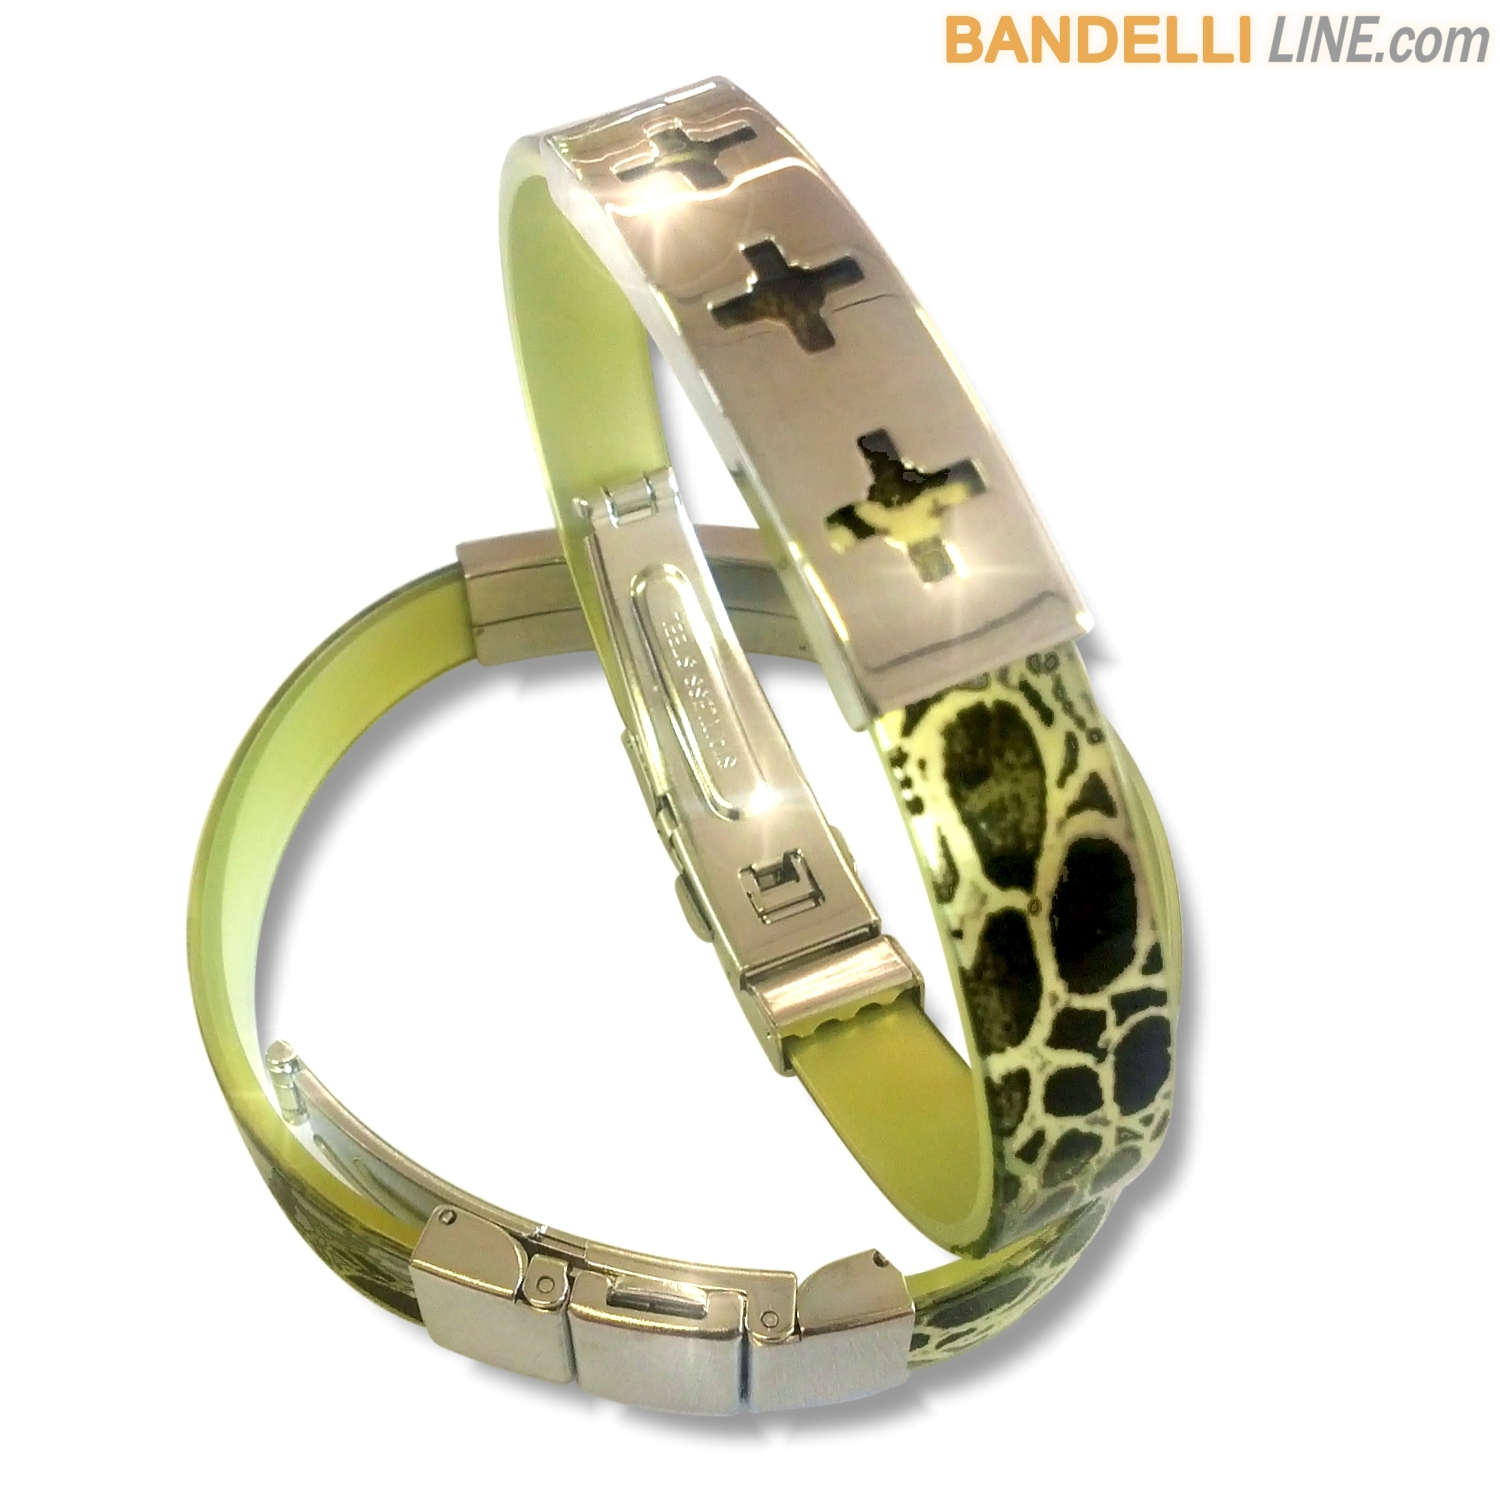 Arcobaleno - Braccialetto Ring Giallo A - Ring Yellow A